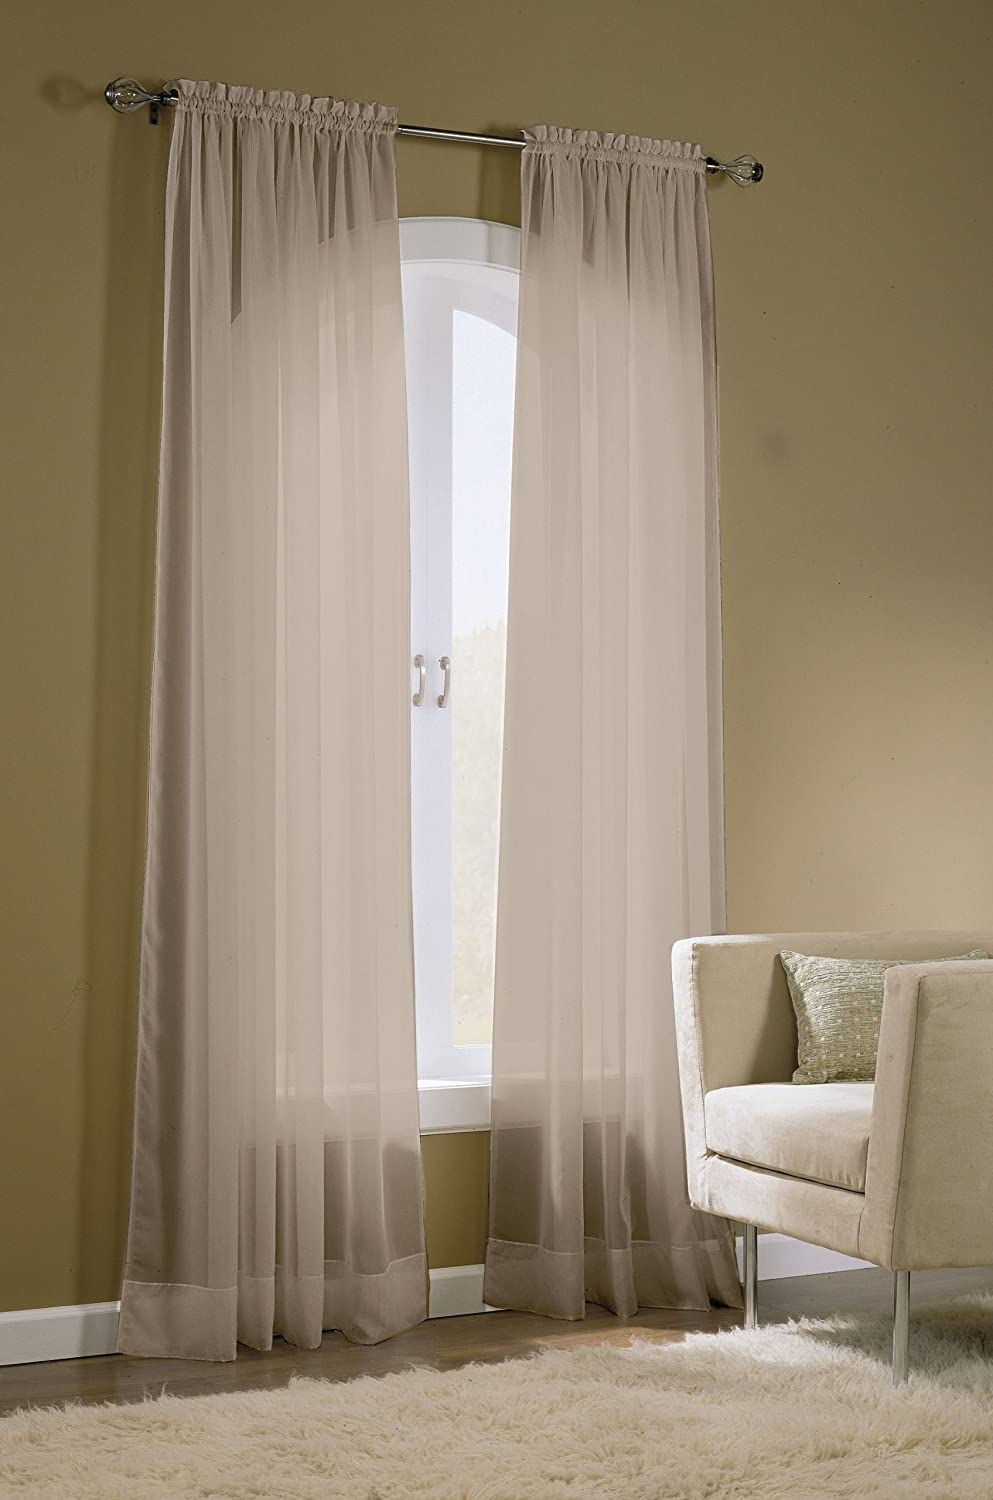 Taupe 259702 Easy Care Fabrics 2-Piece Sheer Window Curtains Drapes Panel Treatment 58 by 63-Inch